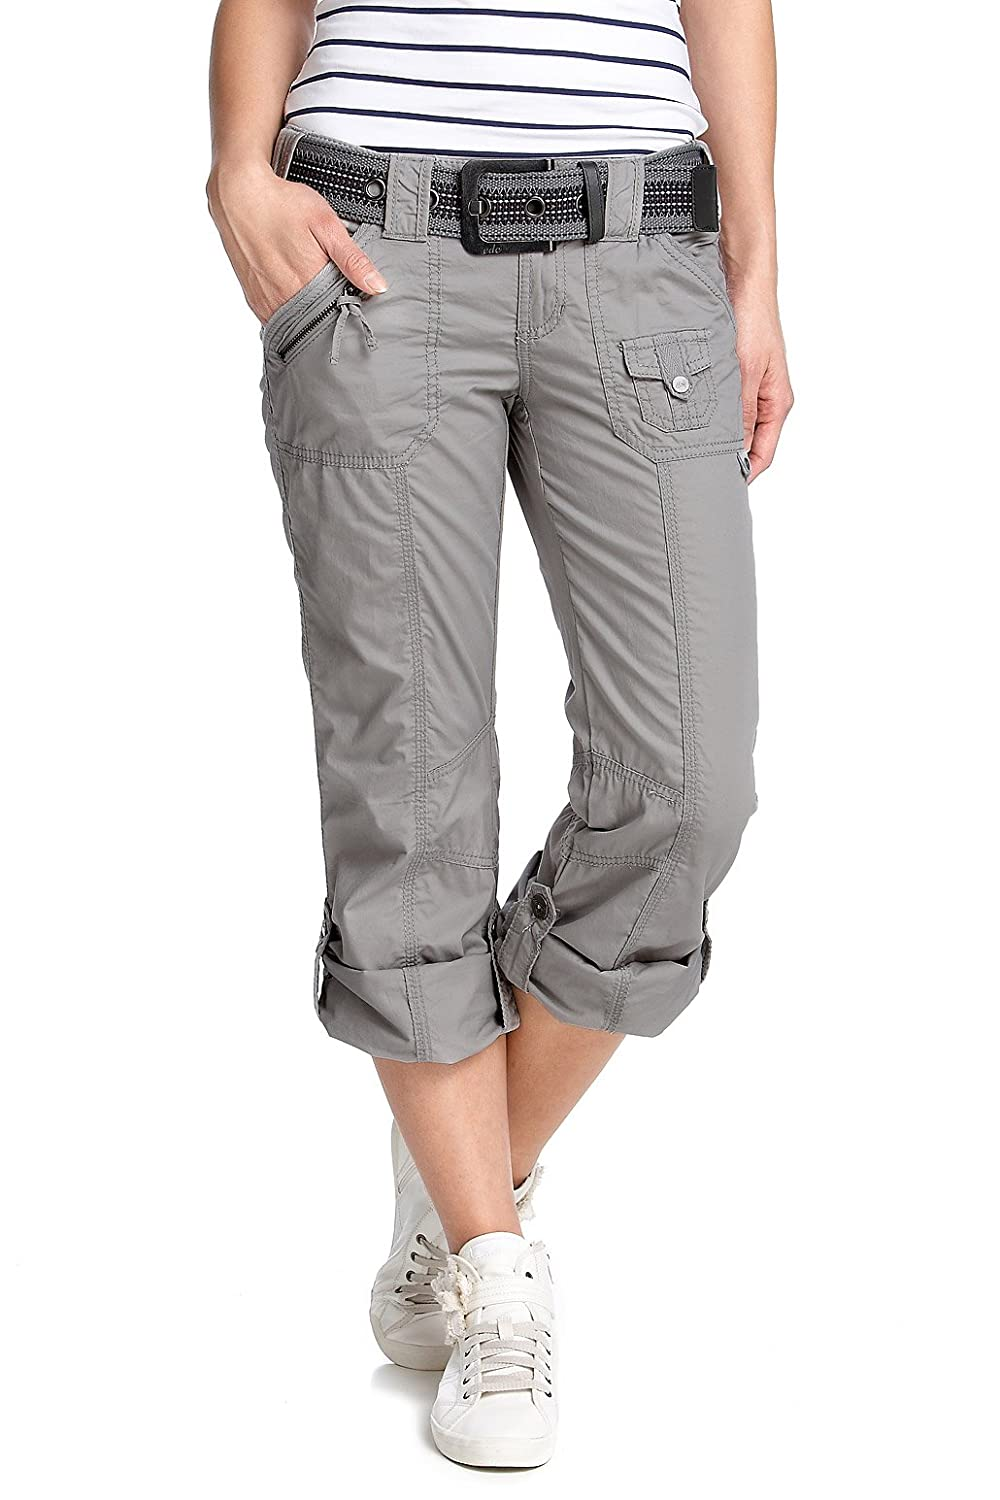 5991f37529 ESPRIT N4C131 Relaxed Women's Cargo Trousers Silver Size 8: Amazon.co.uk:  Clothing